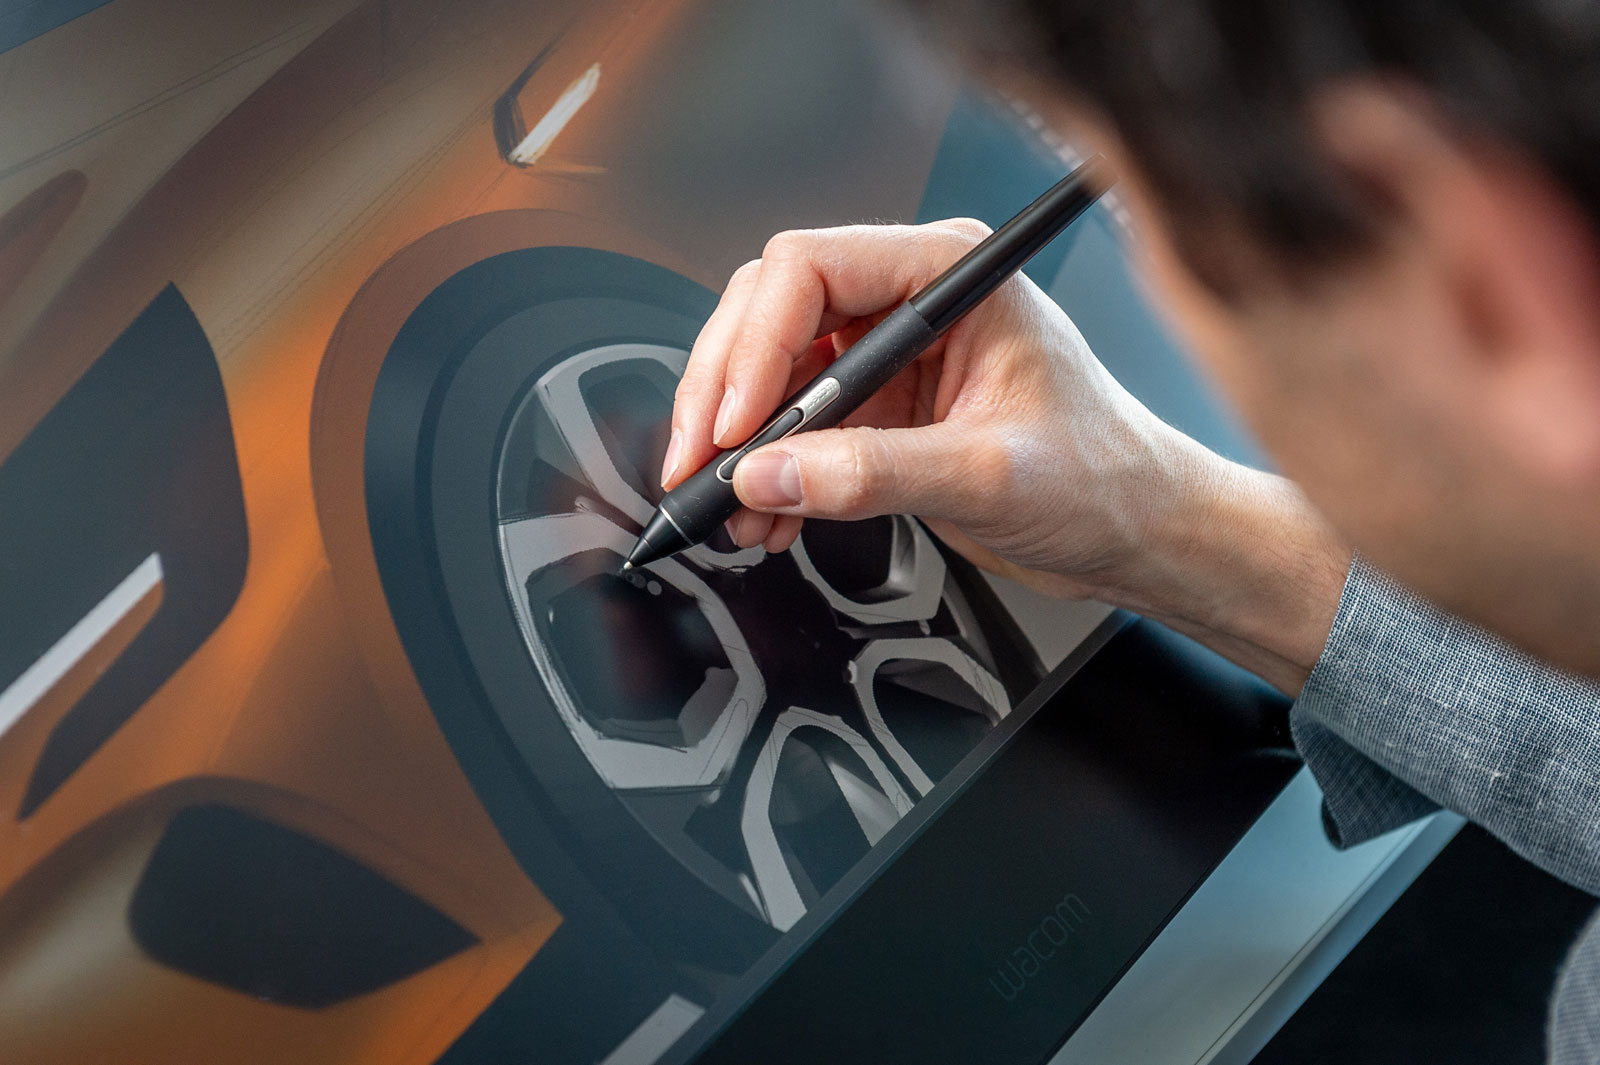 New Renault Captur Design Process Design Sketching on the Cintiq